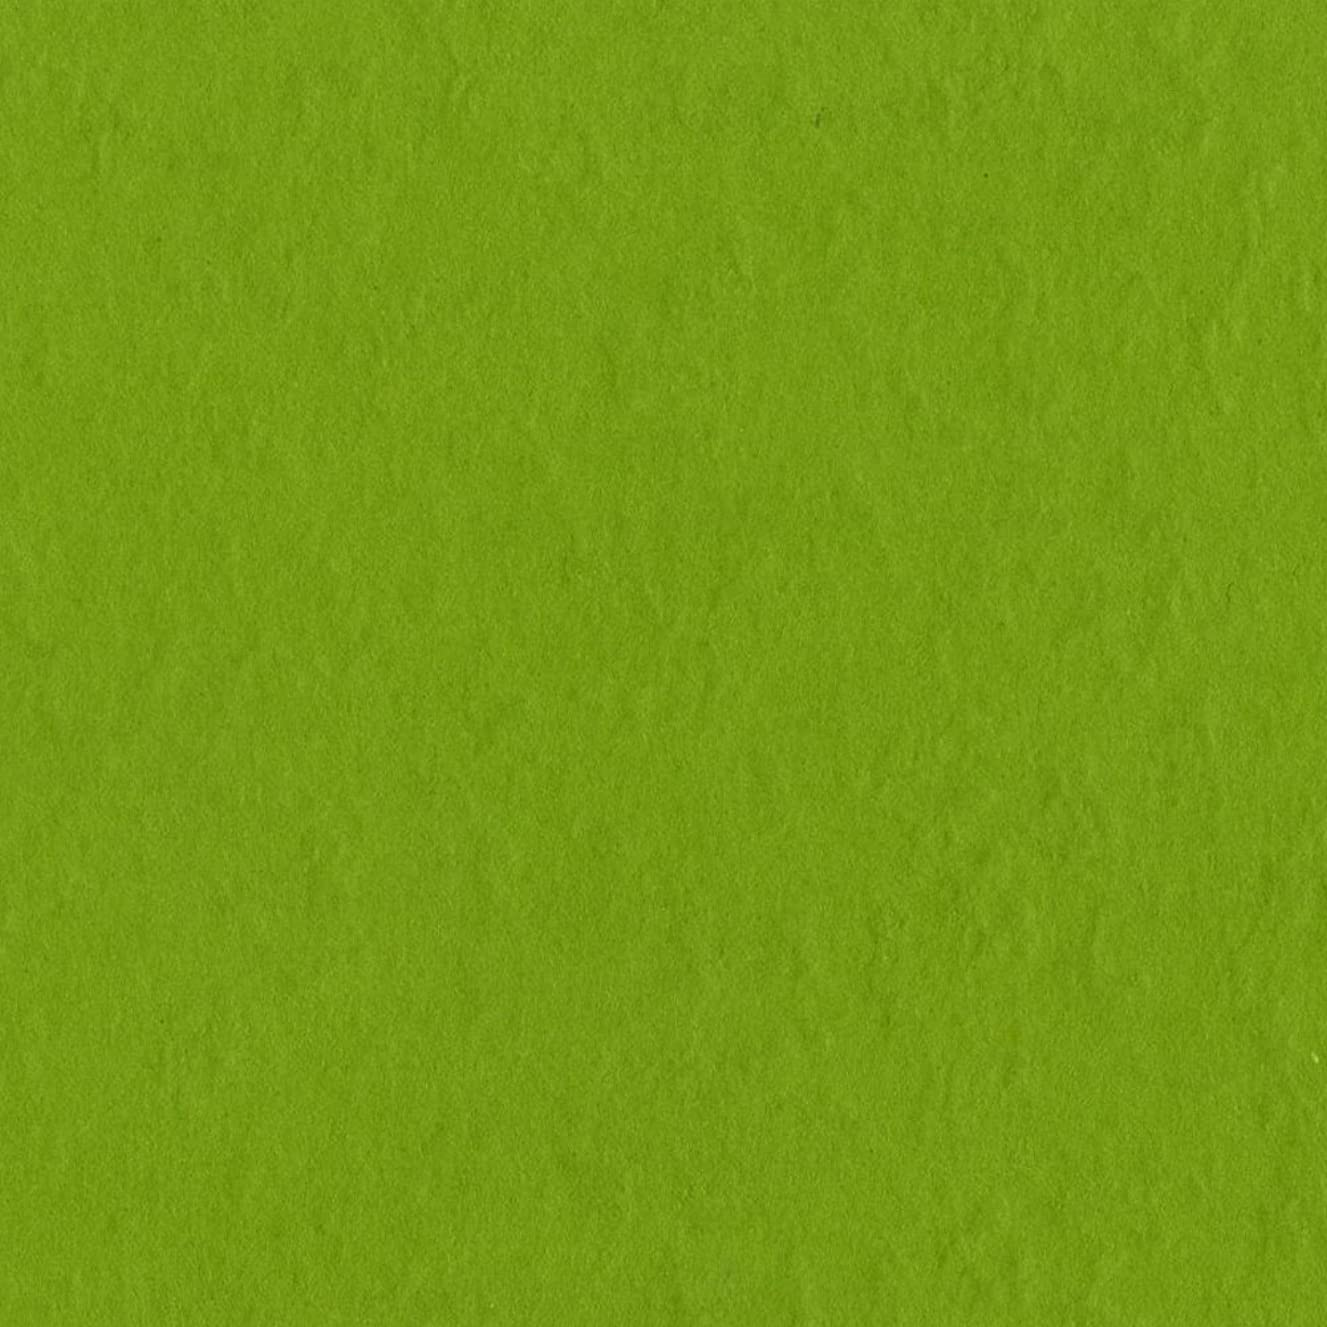 Bazzill Basics Paper T19-5381 Prismatic Cardstock, 25 Sheets, 12 by 12-Inch, Intense Kiwi